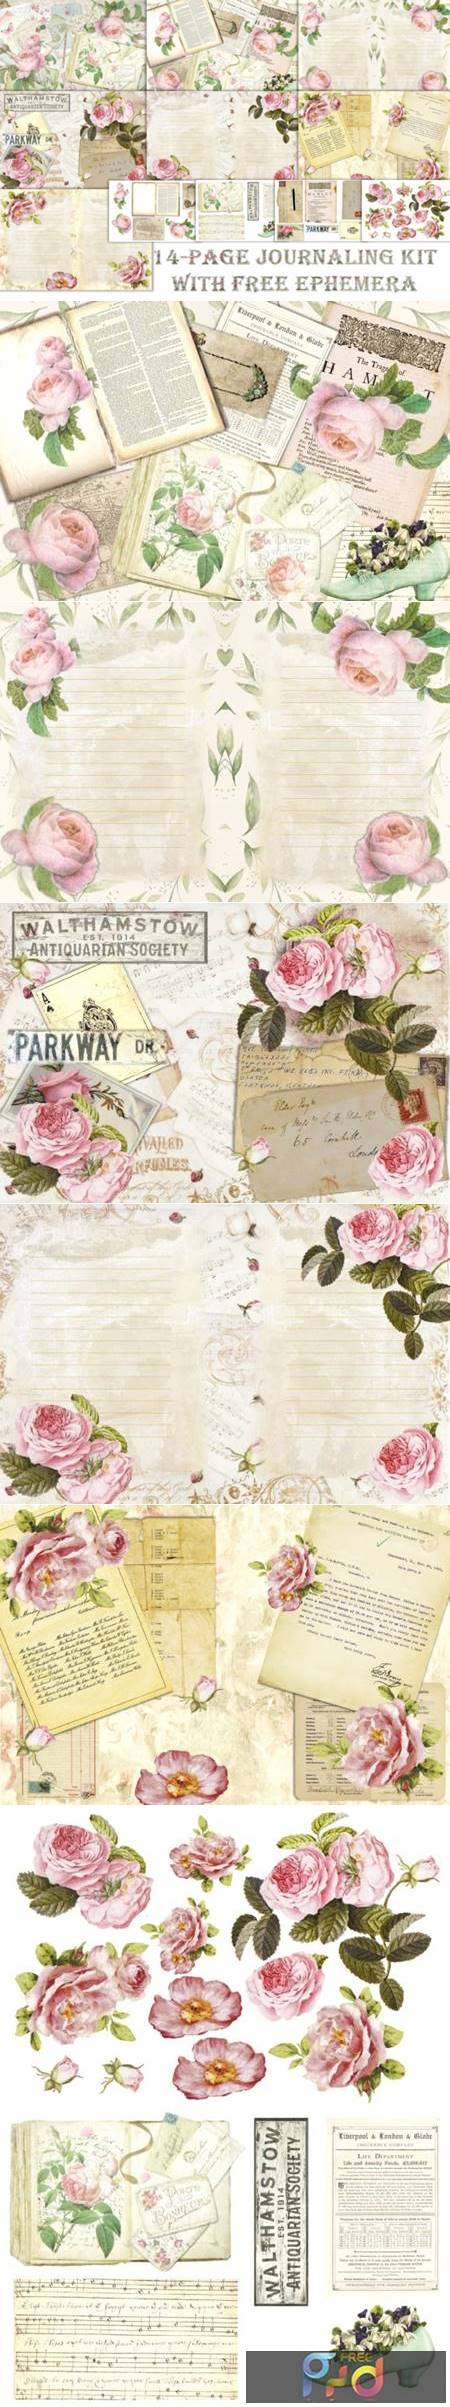 Romantic Roses Backgrounds and Clipart 1629568 1